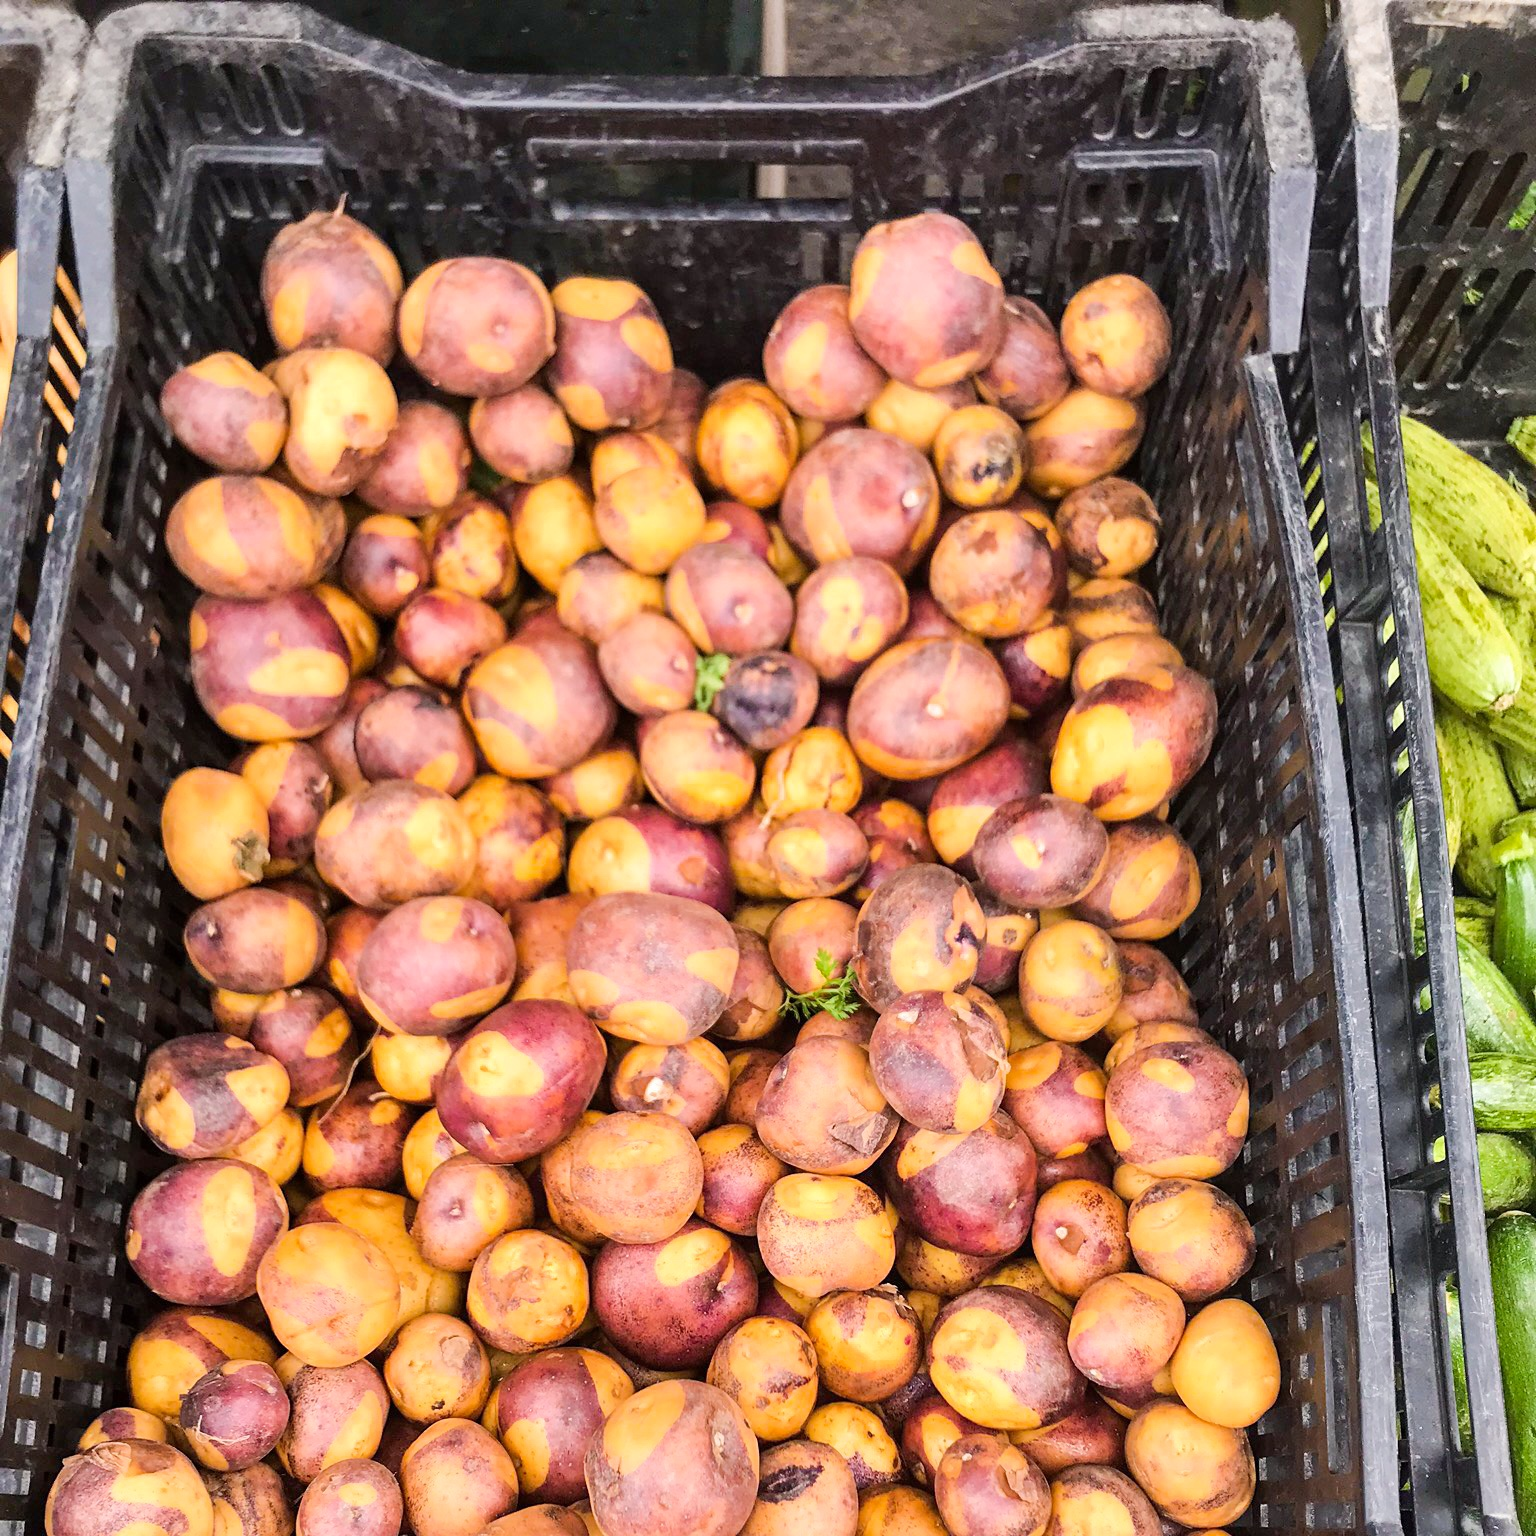 New to me variety of potato - they look semi-peeled, but it's just the coloration of the skin!